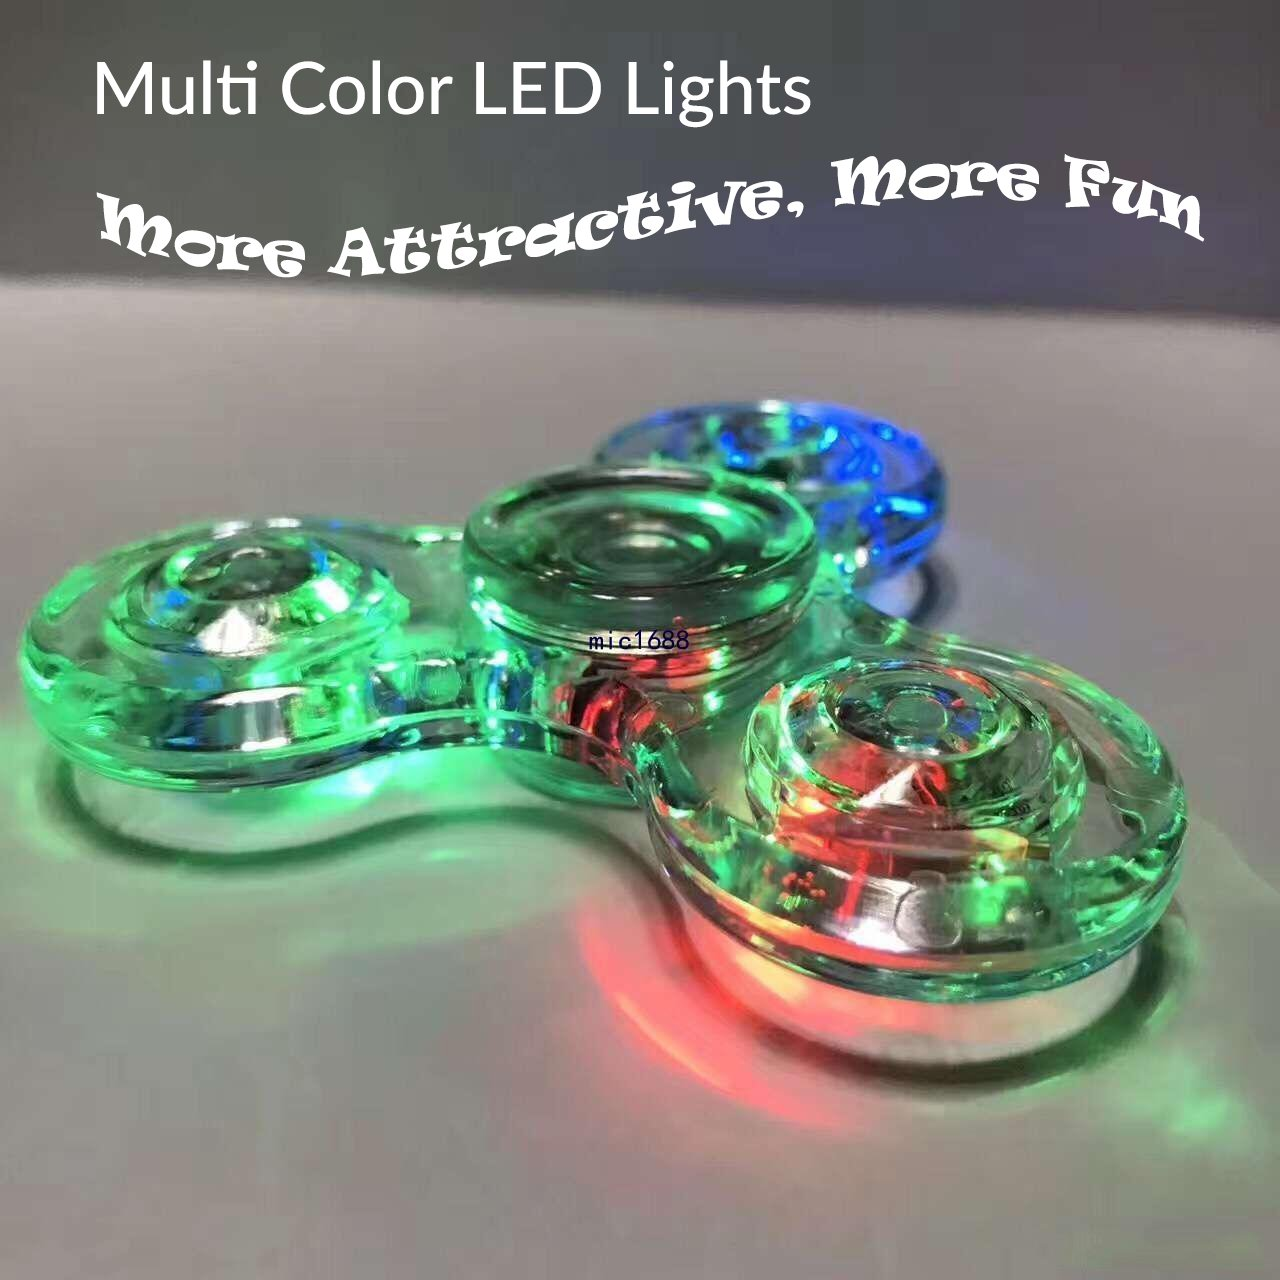 Fidget Spinner [5 Pcs] MEGA Pack, Crystal Led Light Up Rainbow Toy, Clear Fidget Toy |The Mesmerizing Led Lights| Sensory Finger Fiddle Toy |For Boredom Adhd Anxiety Stress Relief |Adults, Boy N Girls by TornadoZ (Image #4)